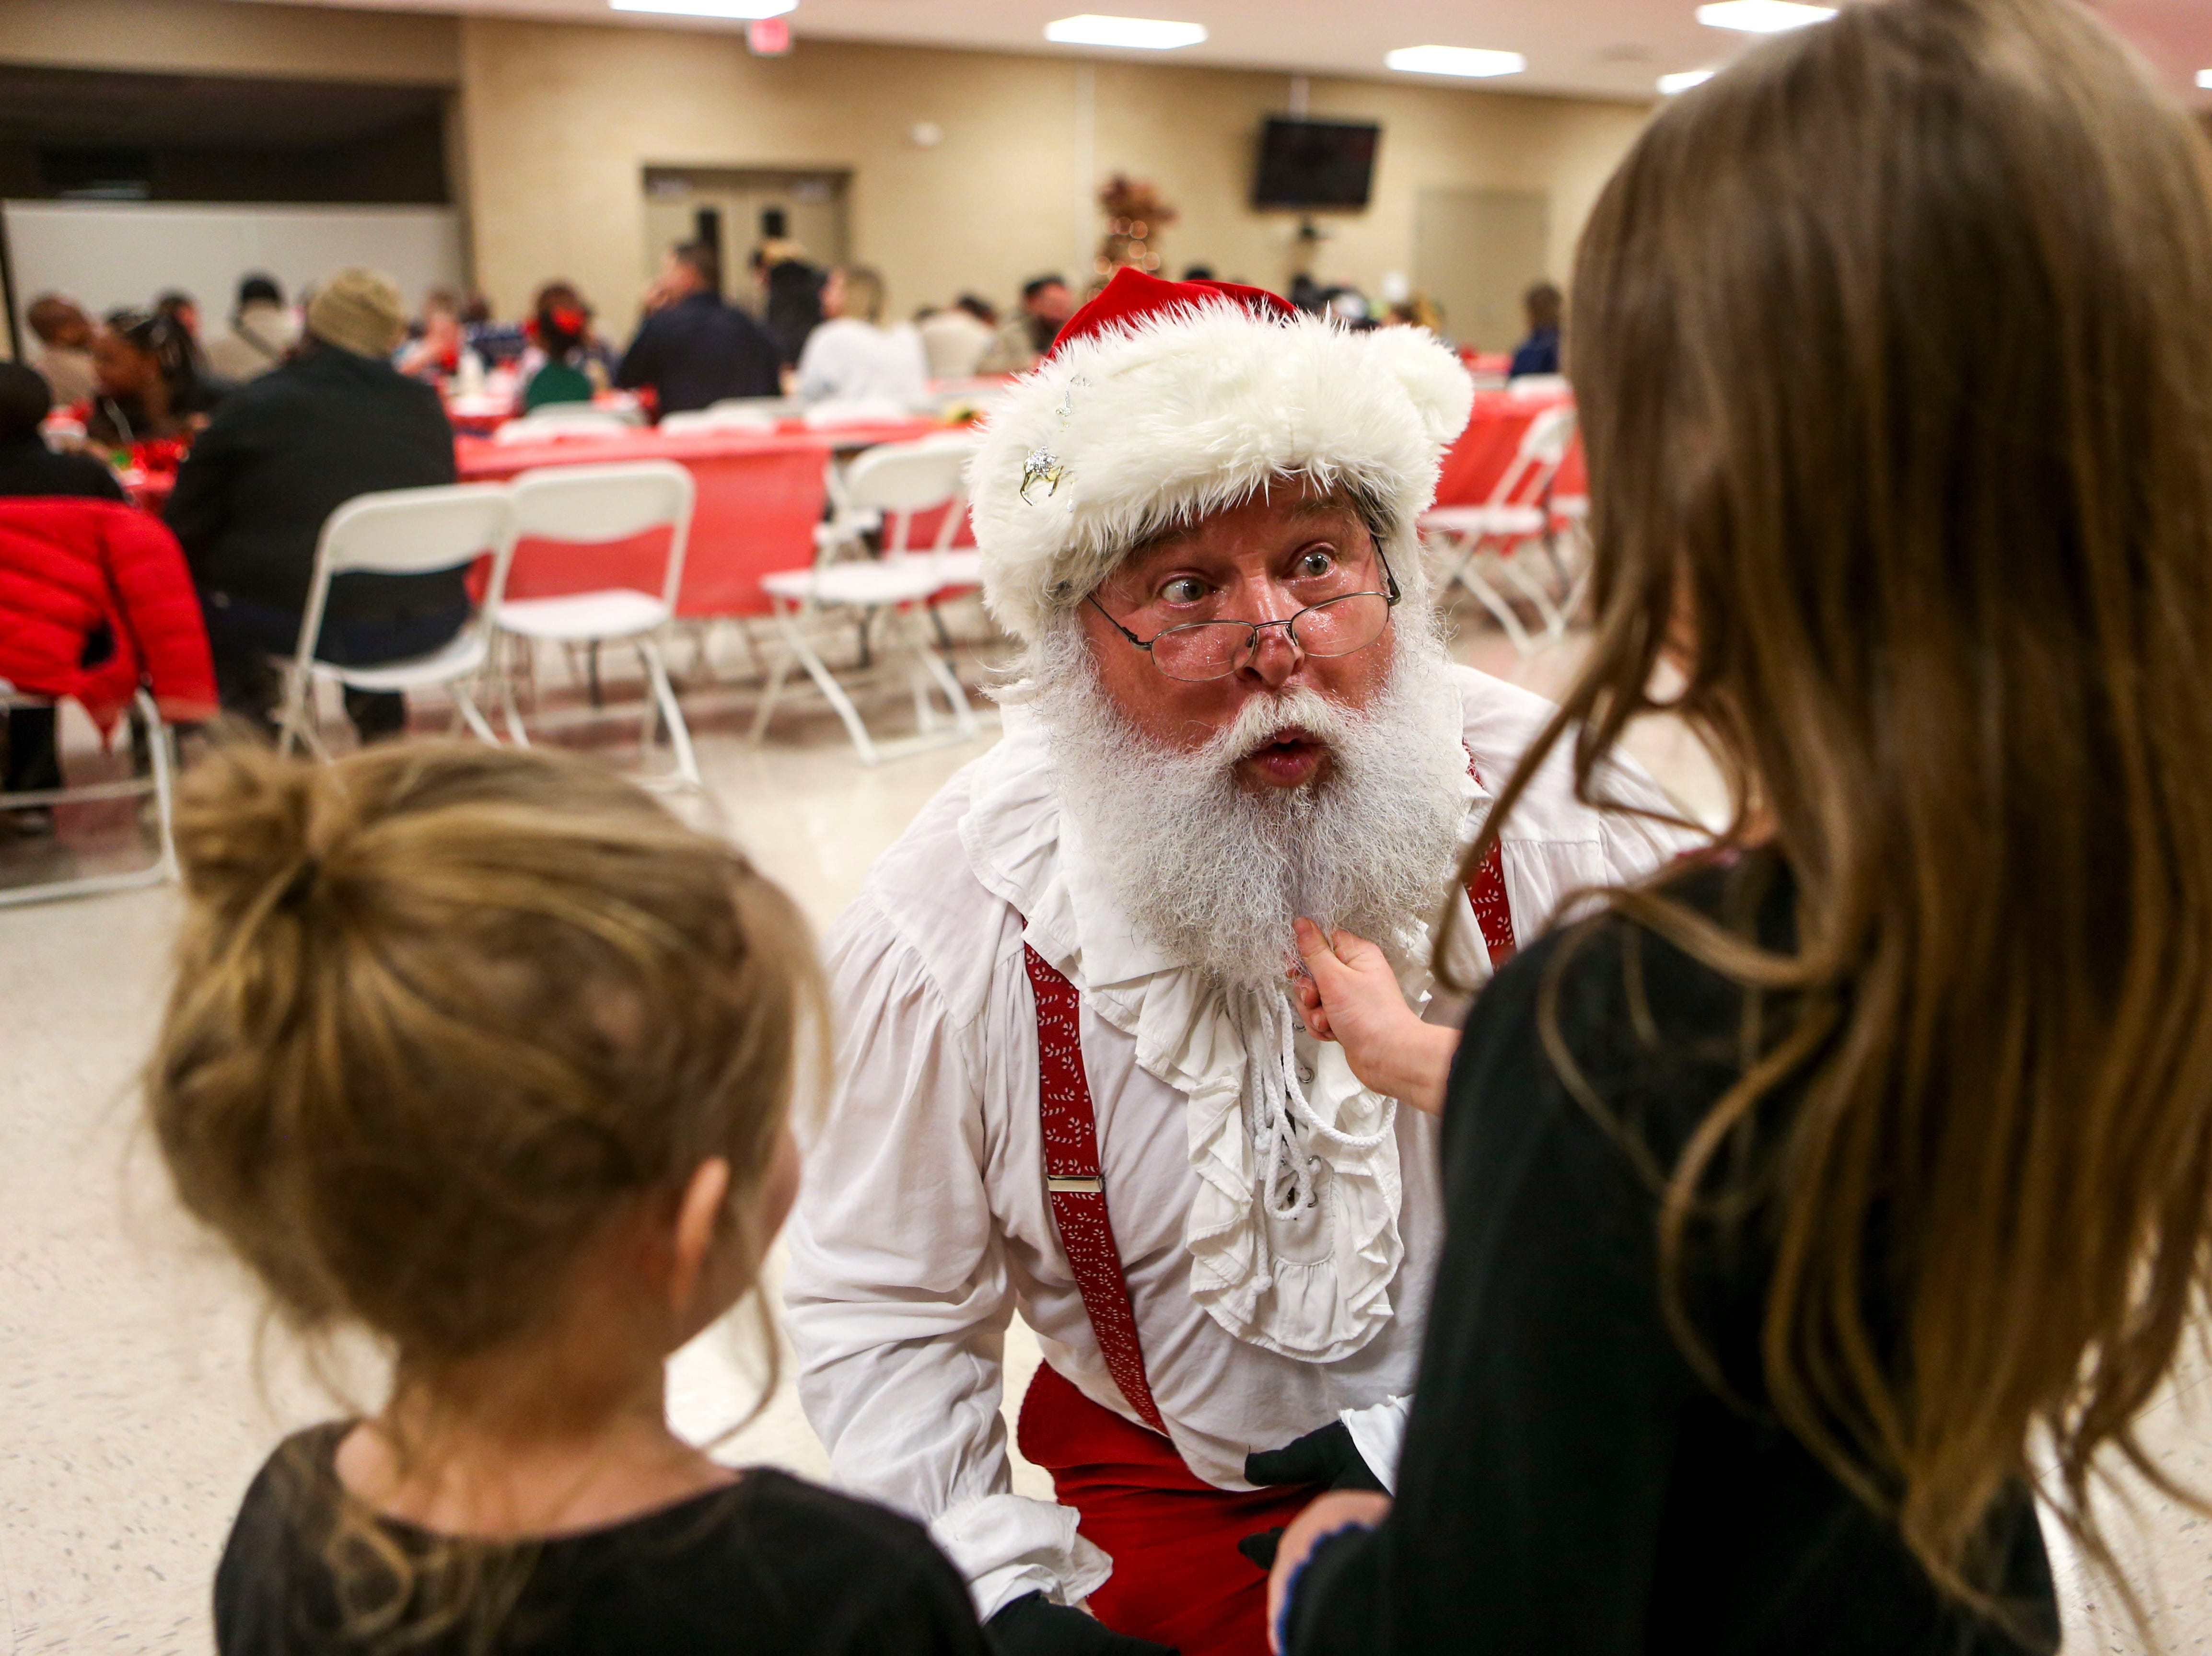 Two participants pull down on Santa Claus' beard during the matching time for Shop with a Cop at Hawkins-Whitby Fema Community Safe Room in Milan, Tenn., on Thursday, Dec. 13, 2018.